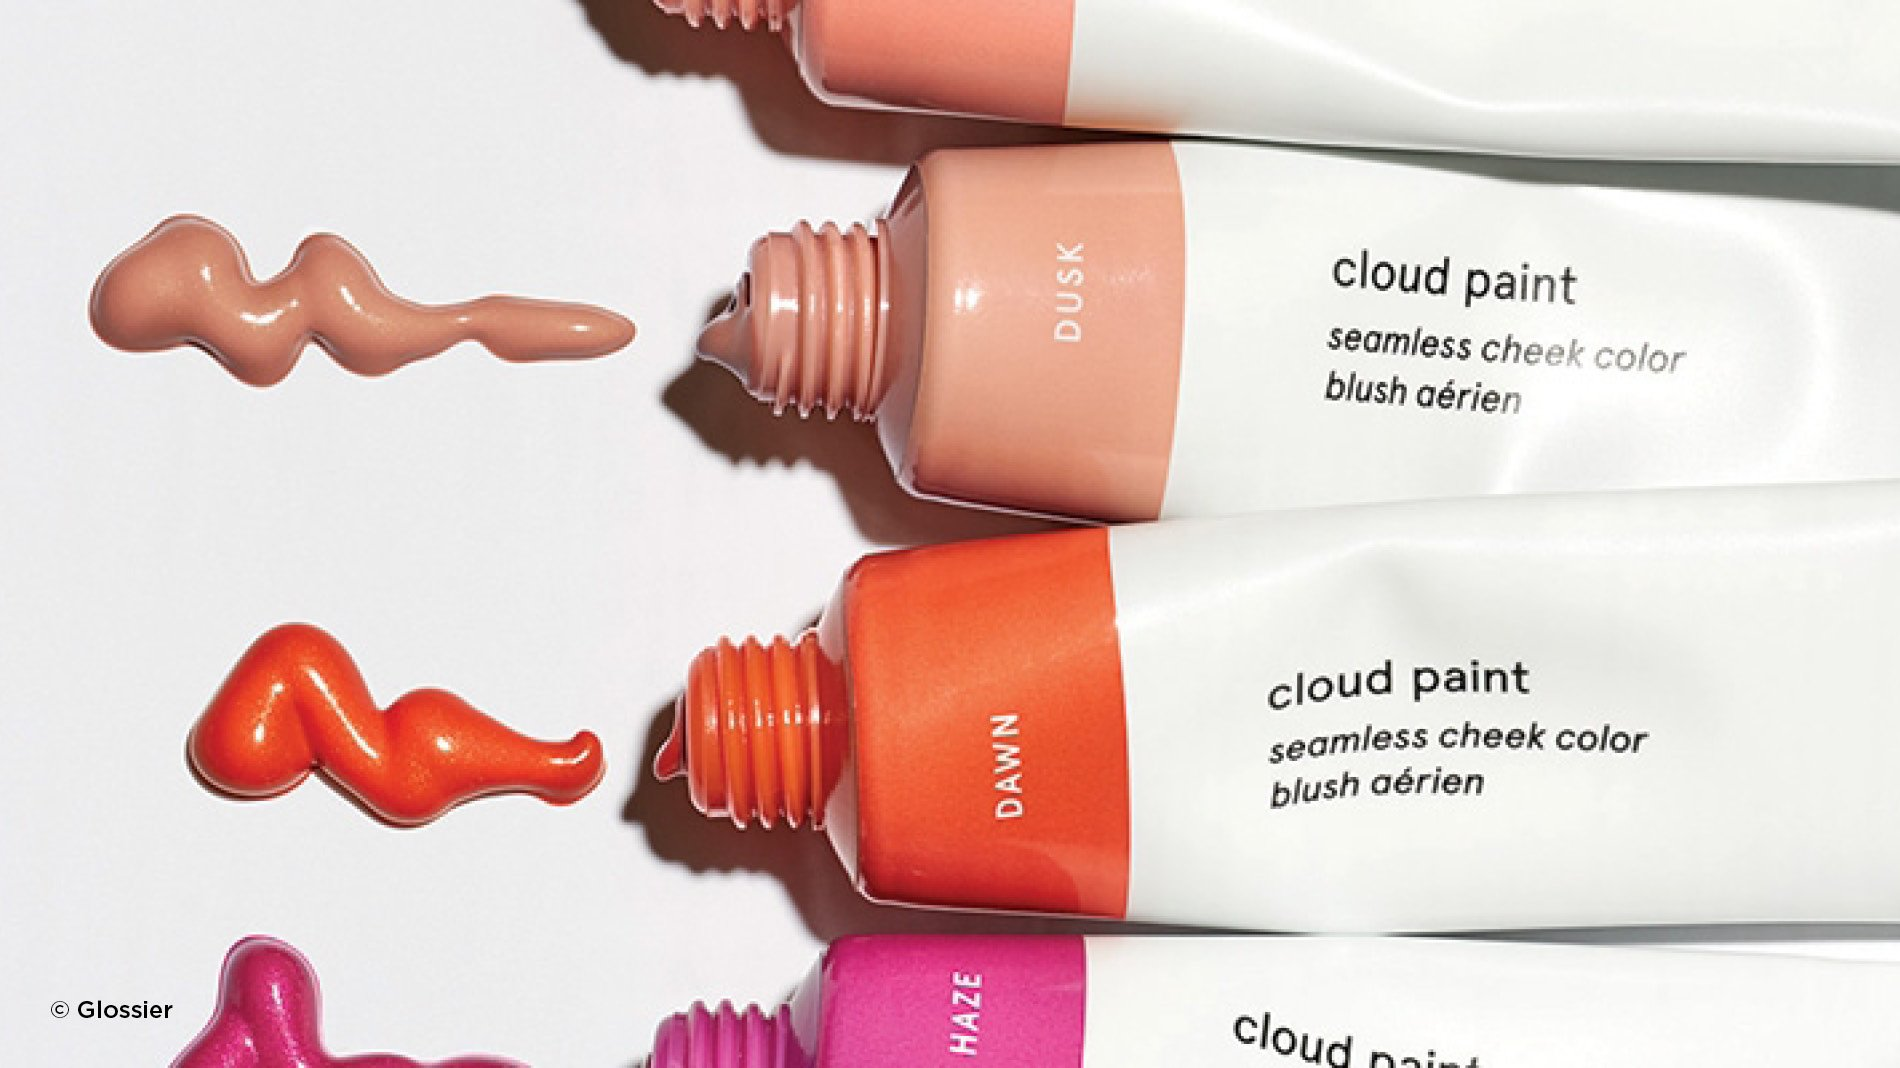 Disruptive beauty brands like glossier shaking up the market with its cloud paint makeup